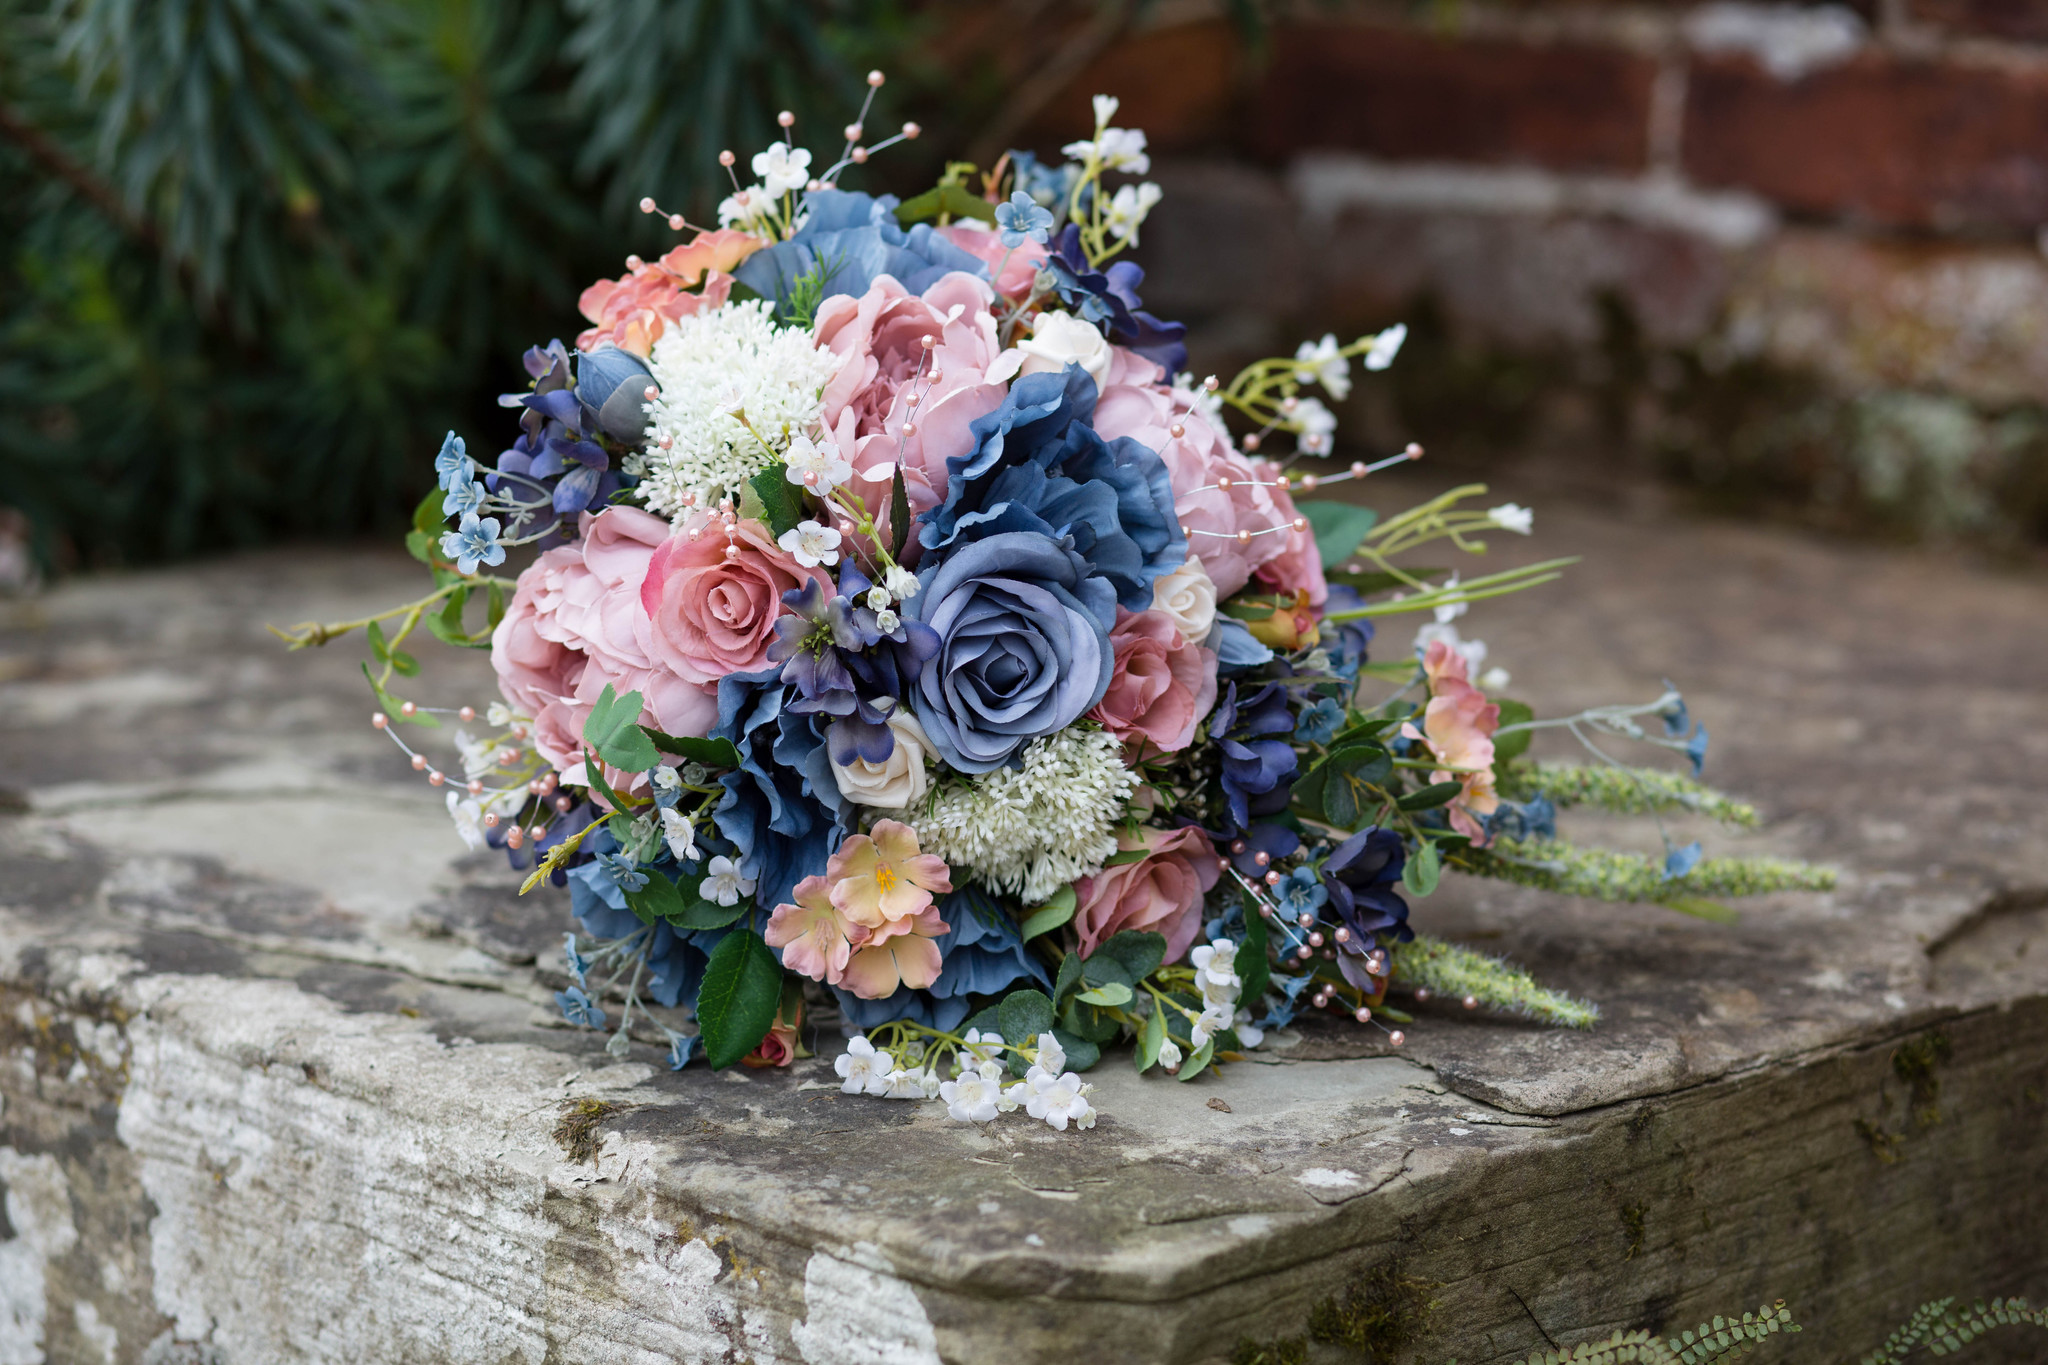 Delbury hall artificial flowers bridal bouquet with blue and peach roses